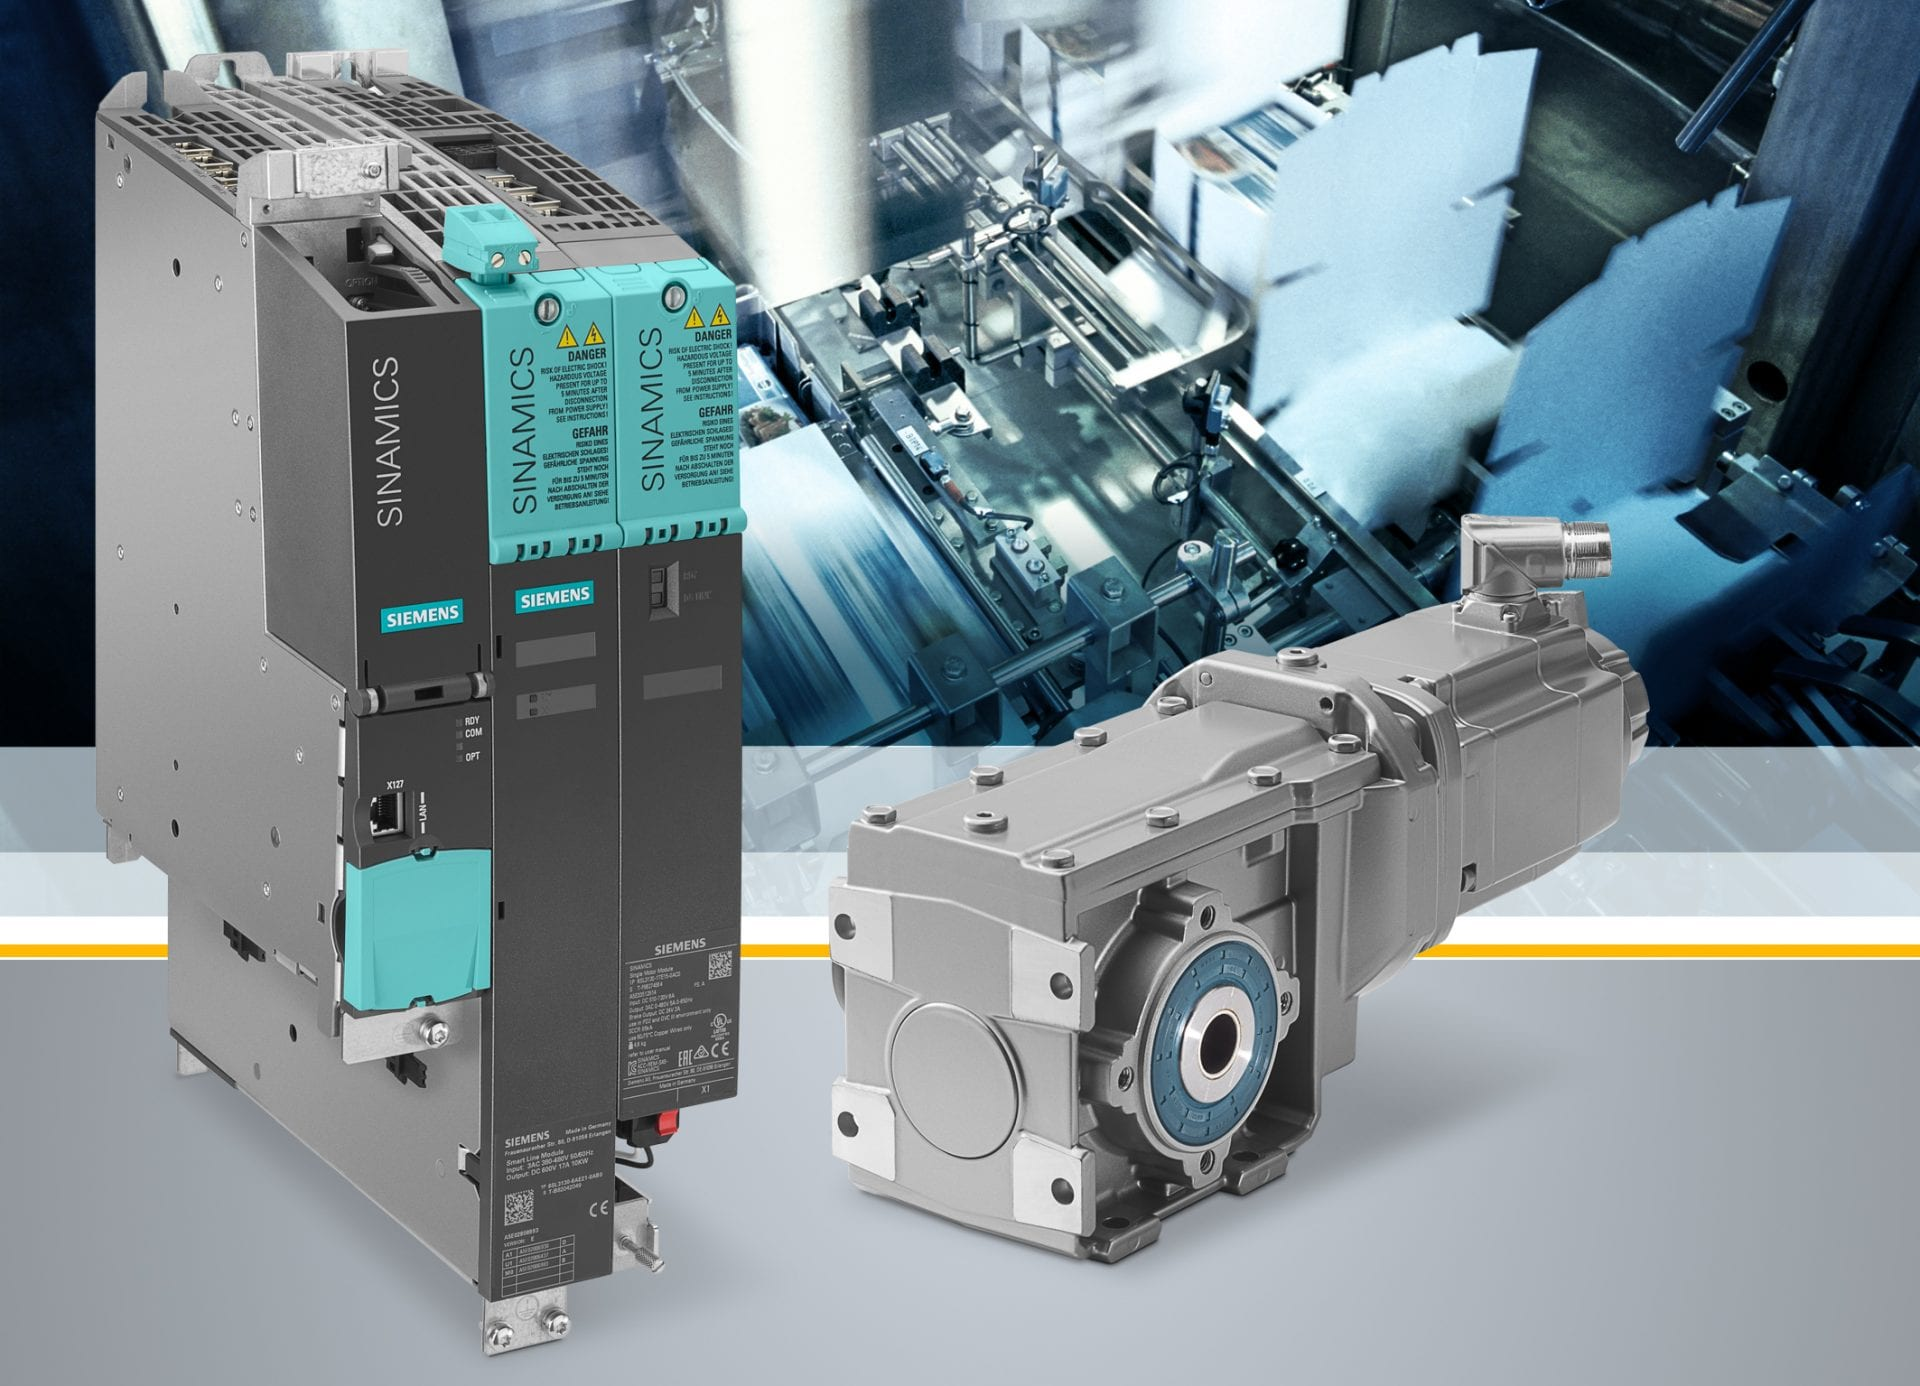 Siemens General Motion Control Archives - Bernard and Company